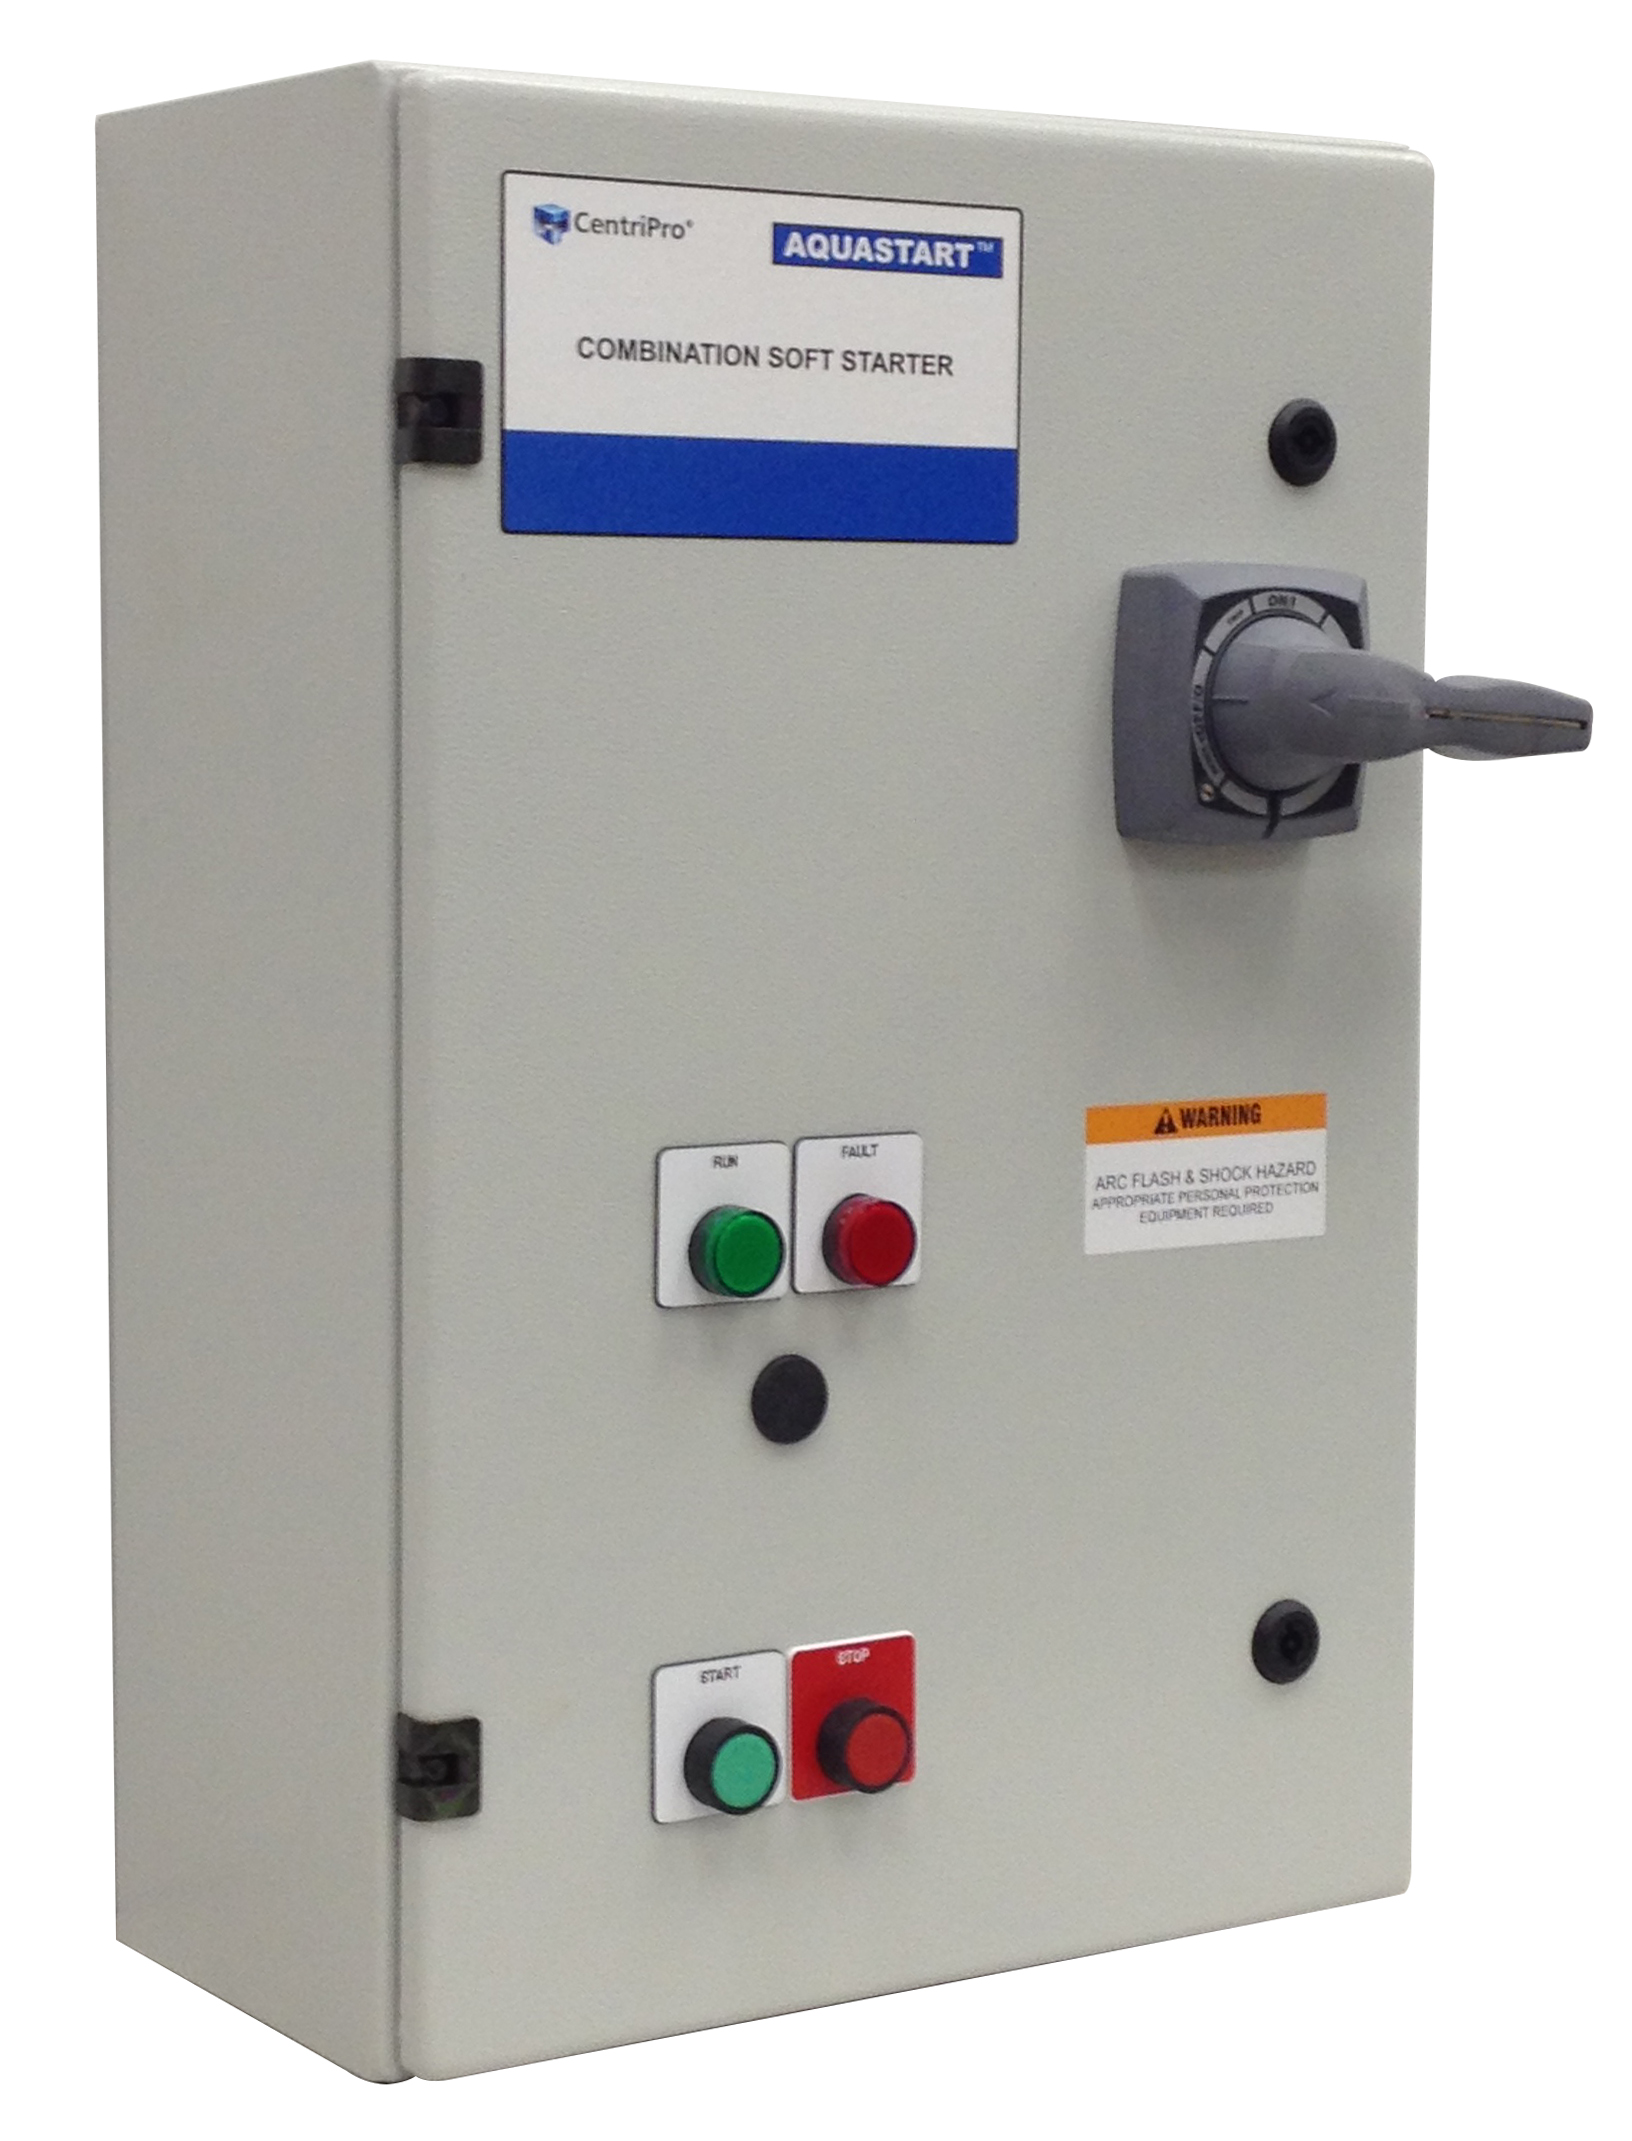 Aquastart Combination Soft Starters Xylem Applied Water Systems Electric Motor Diagram As Well Access Control Door Contact Electrical